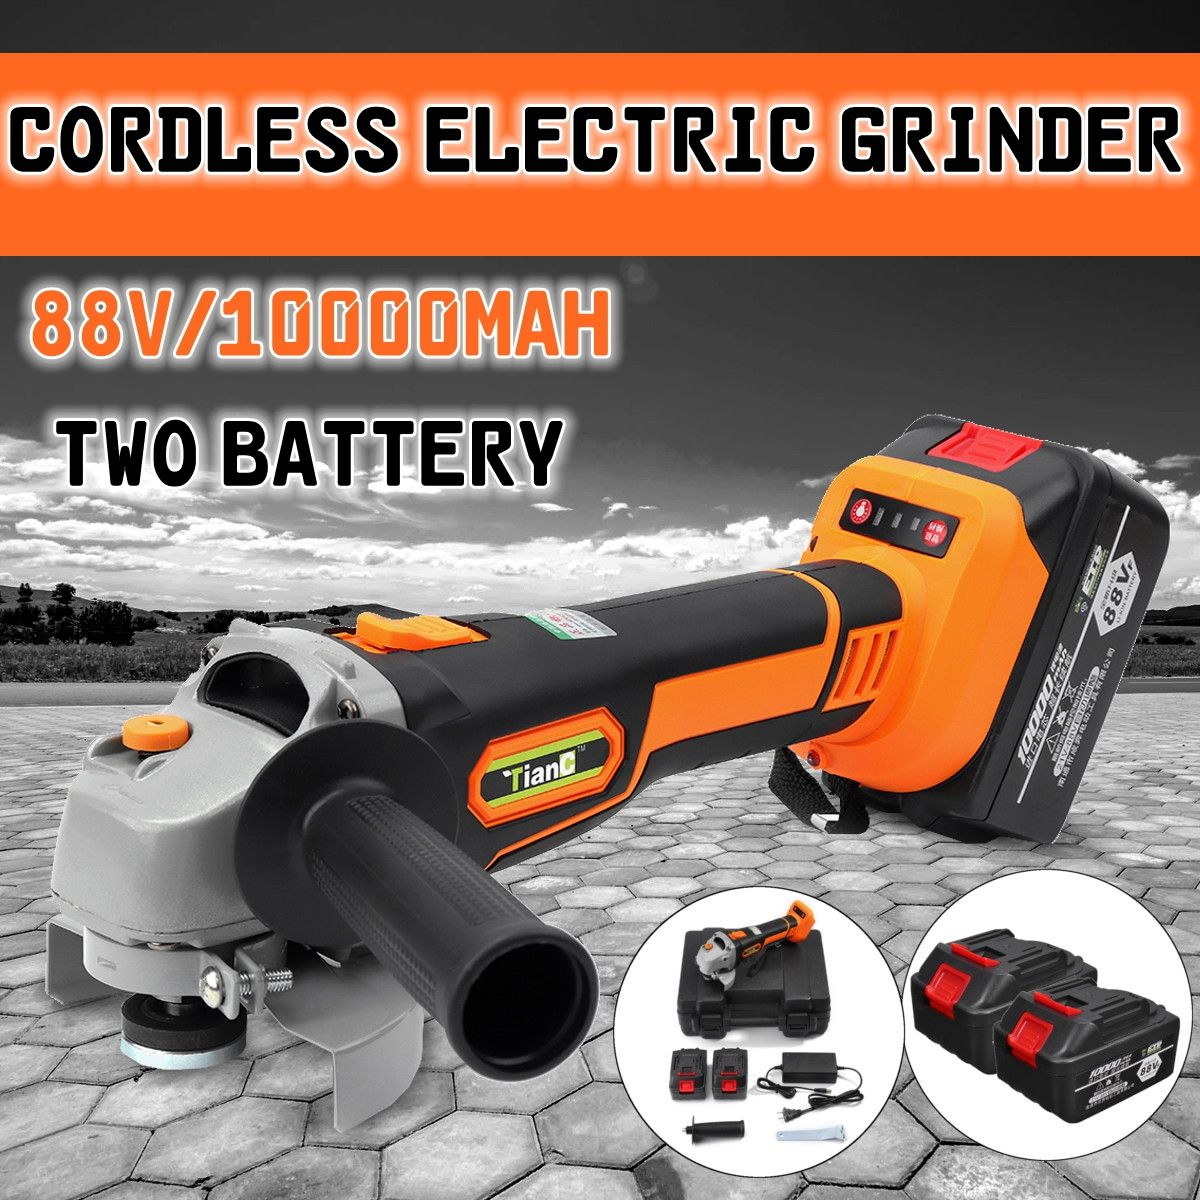 88V 10000mAh Electric Angle Grinder Cordless Polisher Polishing Machine Cutting Tool with 2 battery for grinding cutting metal